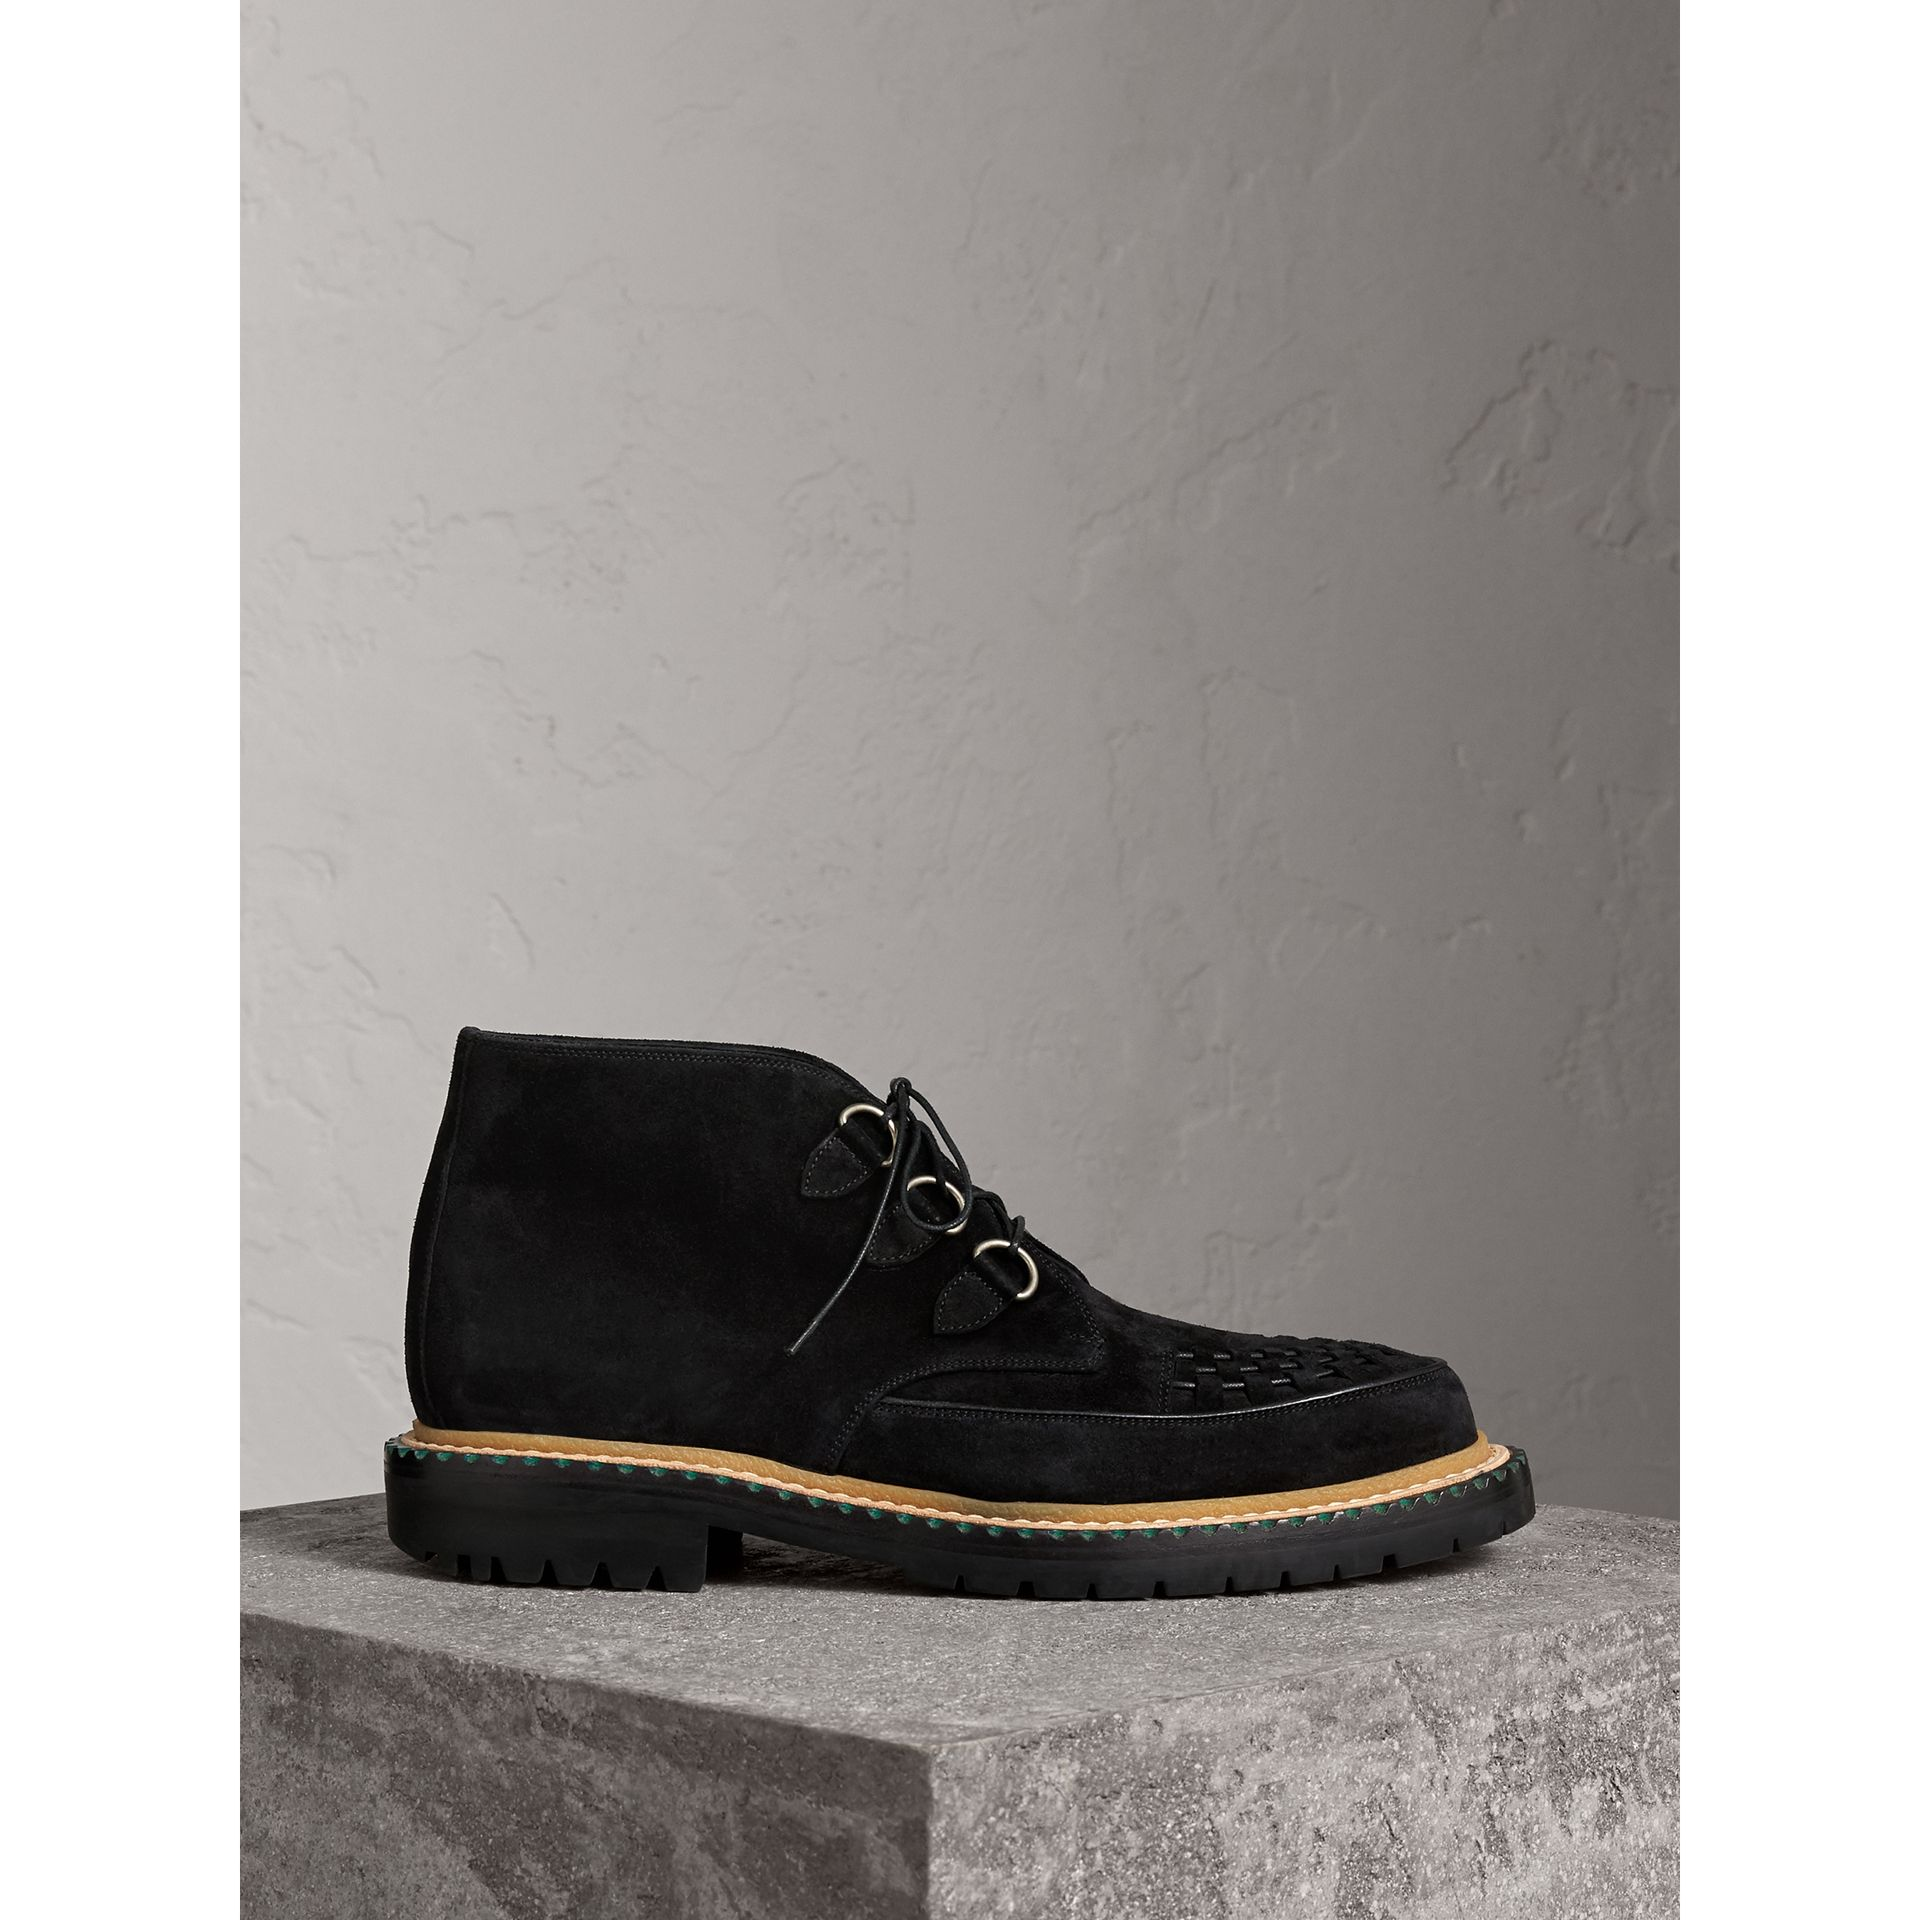 Burberry Black Woven-toe Suede Ankle Boots